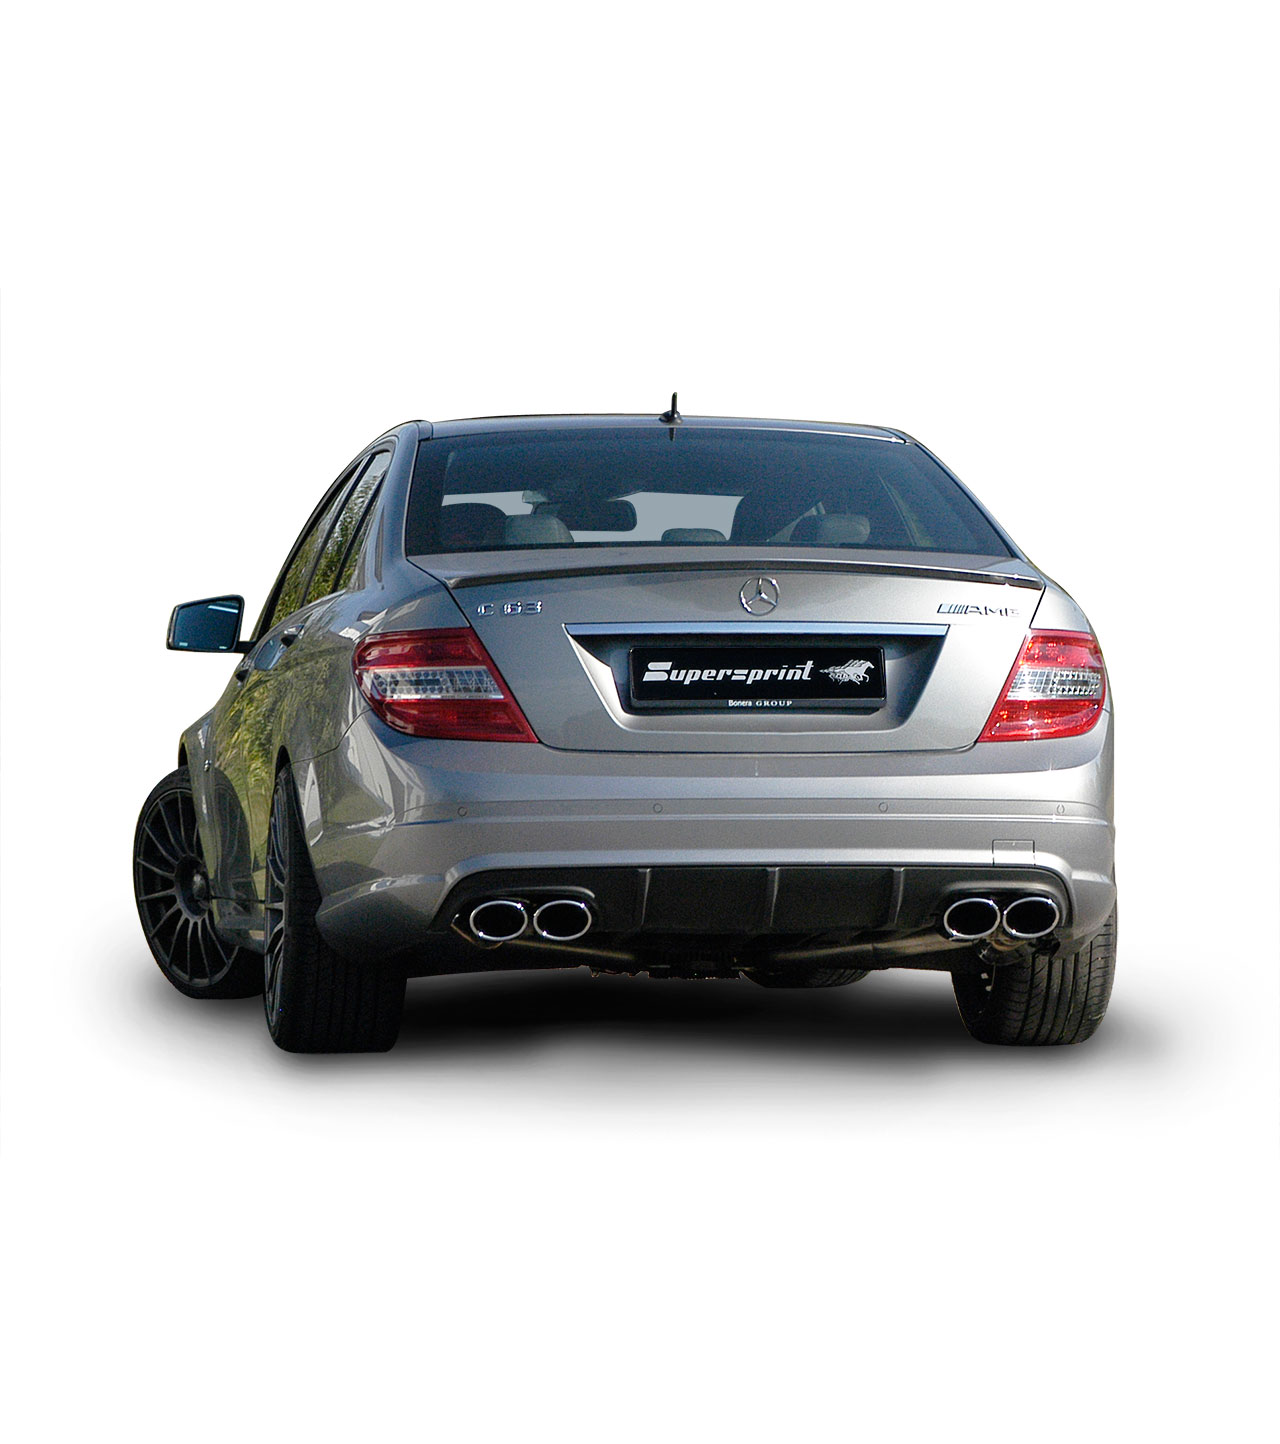 Mercedes AMG - MERCEDES W204 C63 AMG V8 (Sedan + S.W.- M156 - 456 Hp) 2007 ->(Cat.-Back)